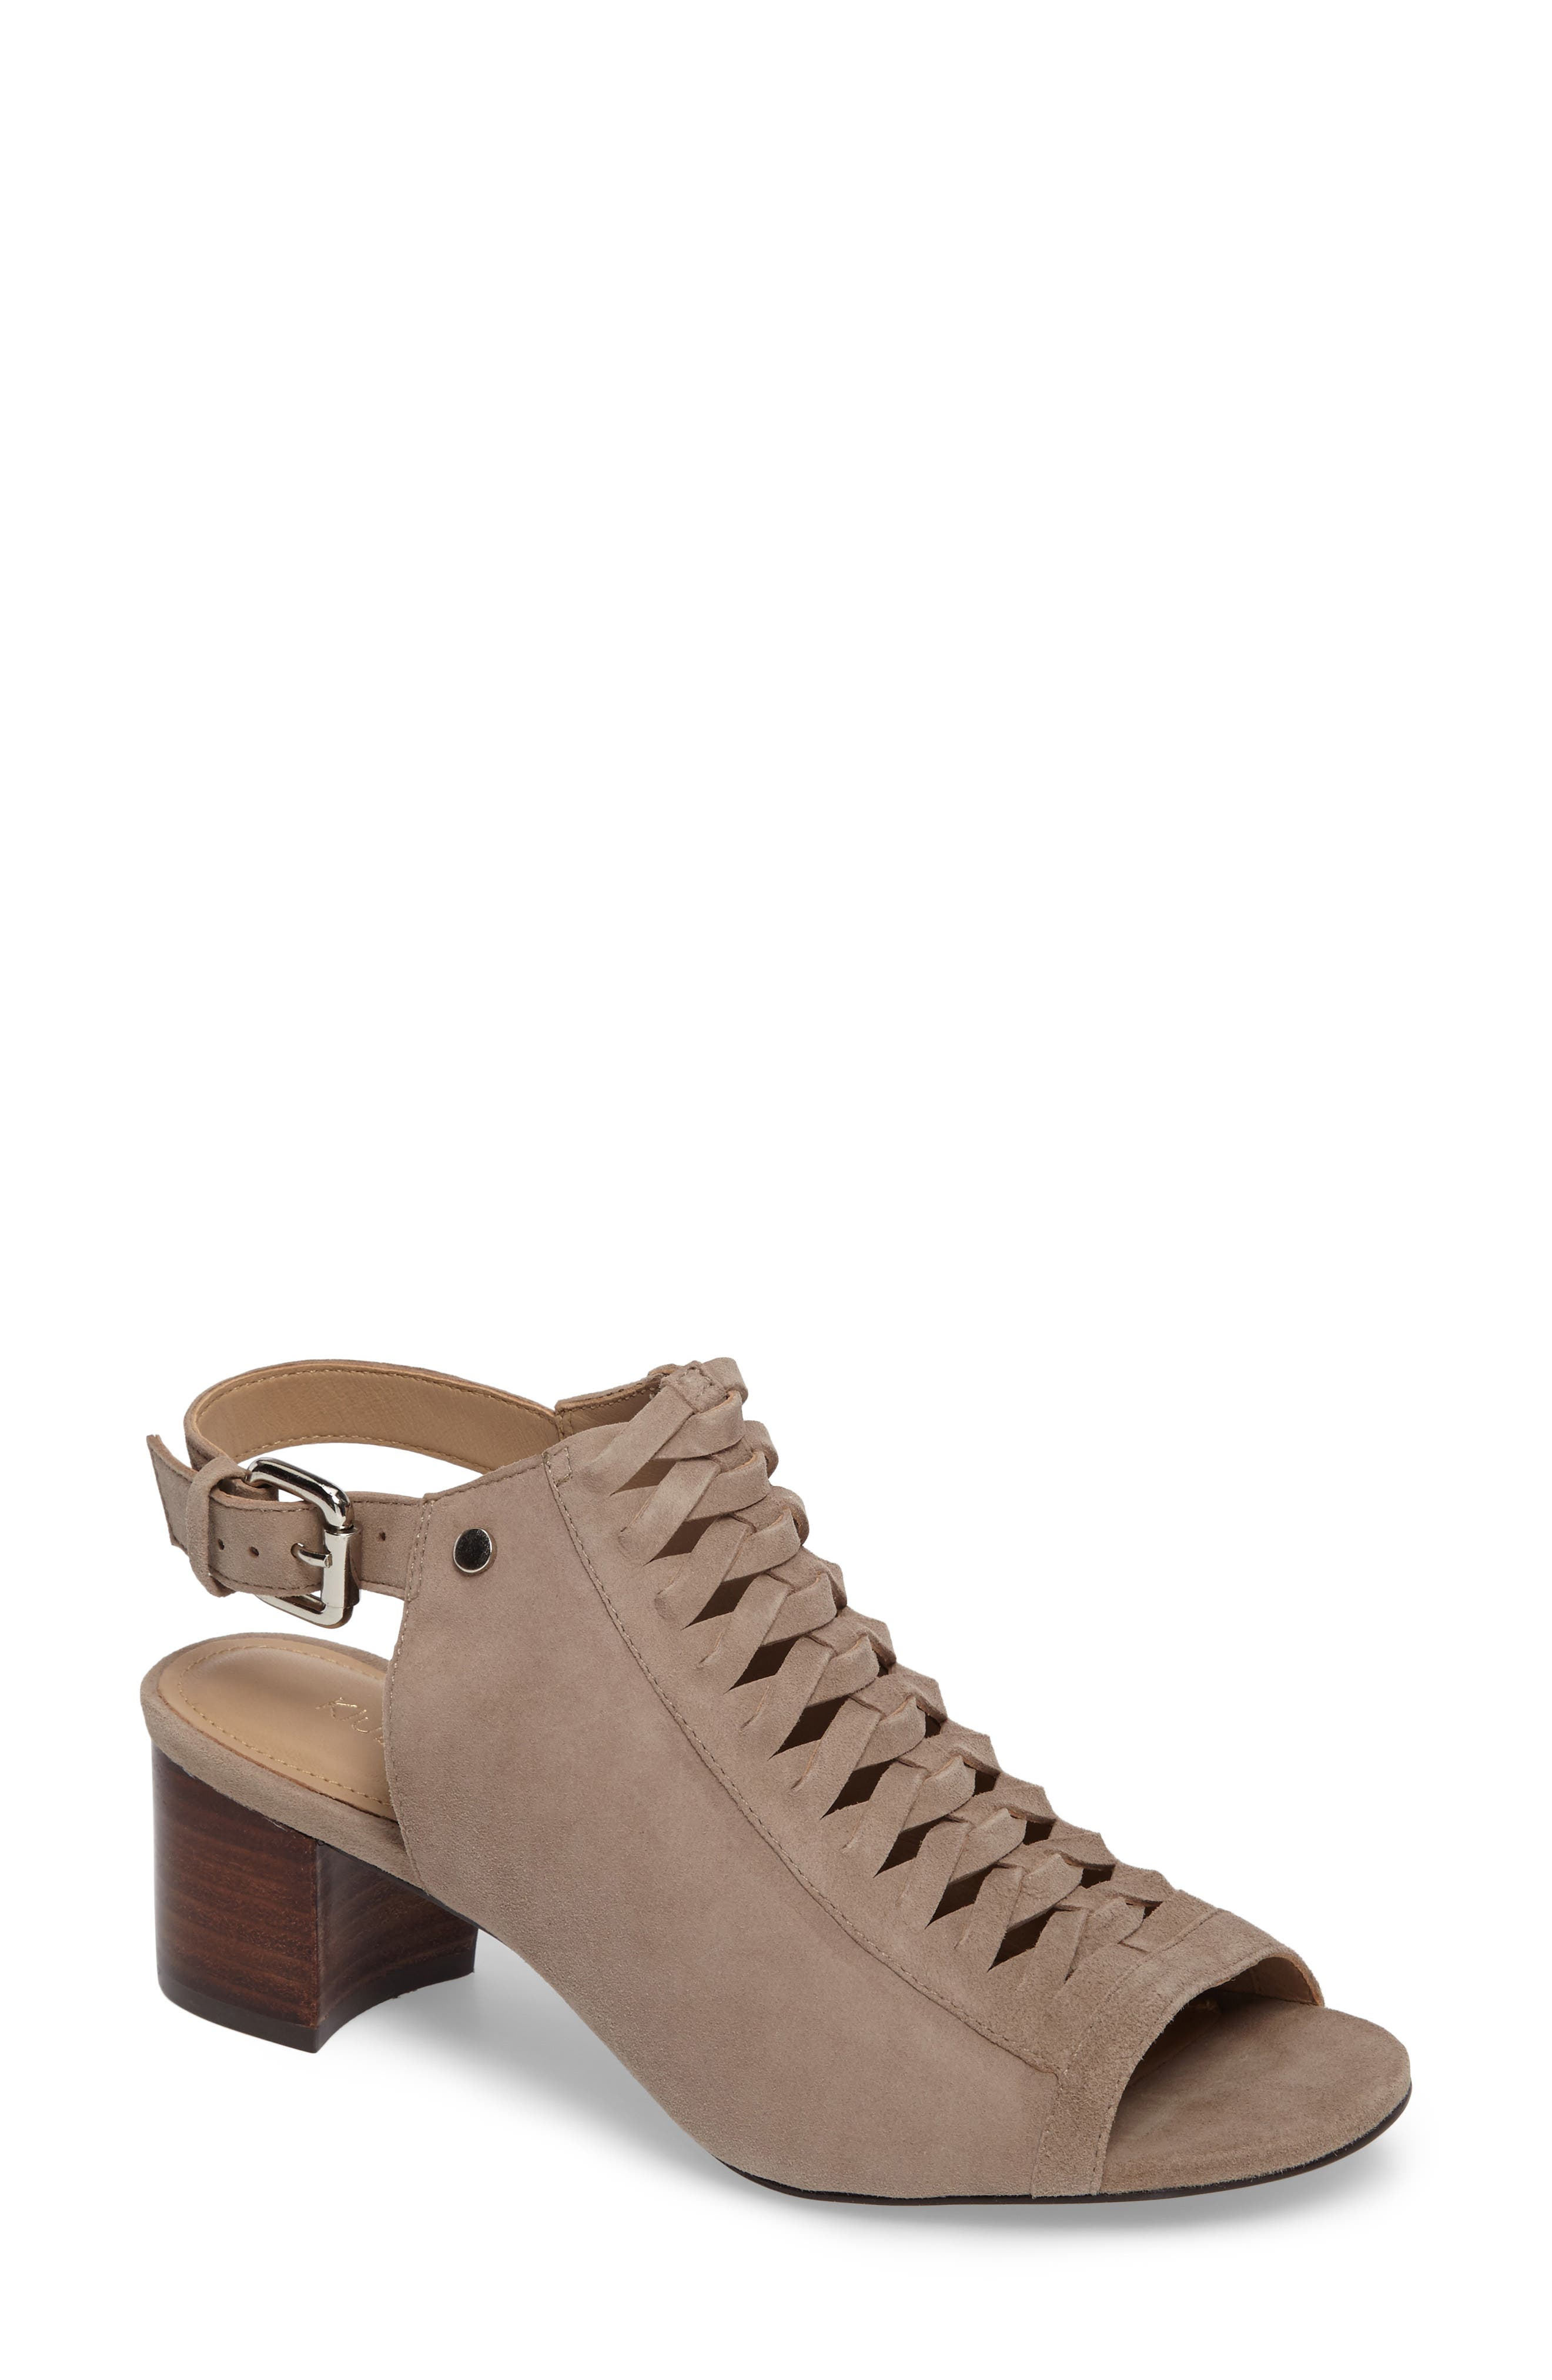 Dallas Woven Sandal,                         Main,                         color, Taupe Suede